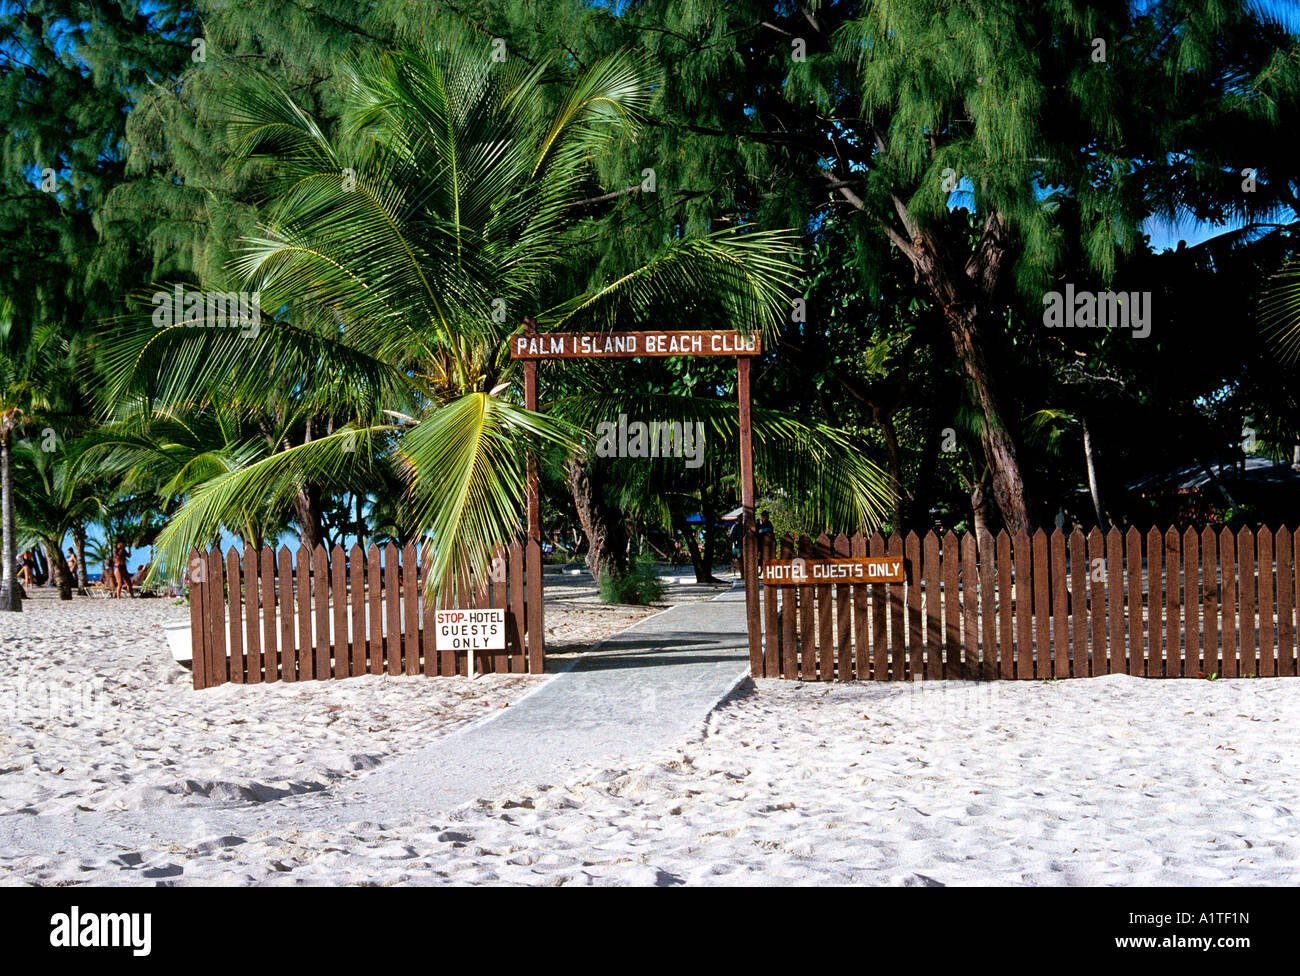 hotel guests only sign island of grenada archipelago of the lesser antilles caribbean editorial use only - Stock Image